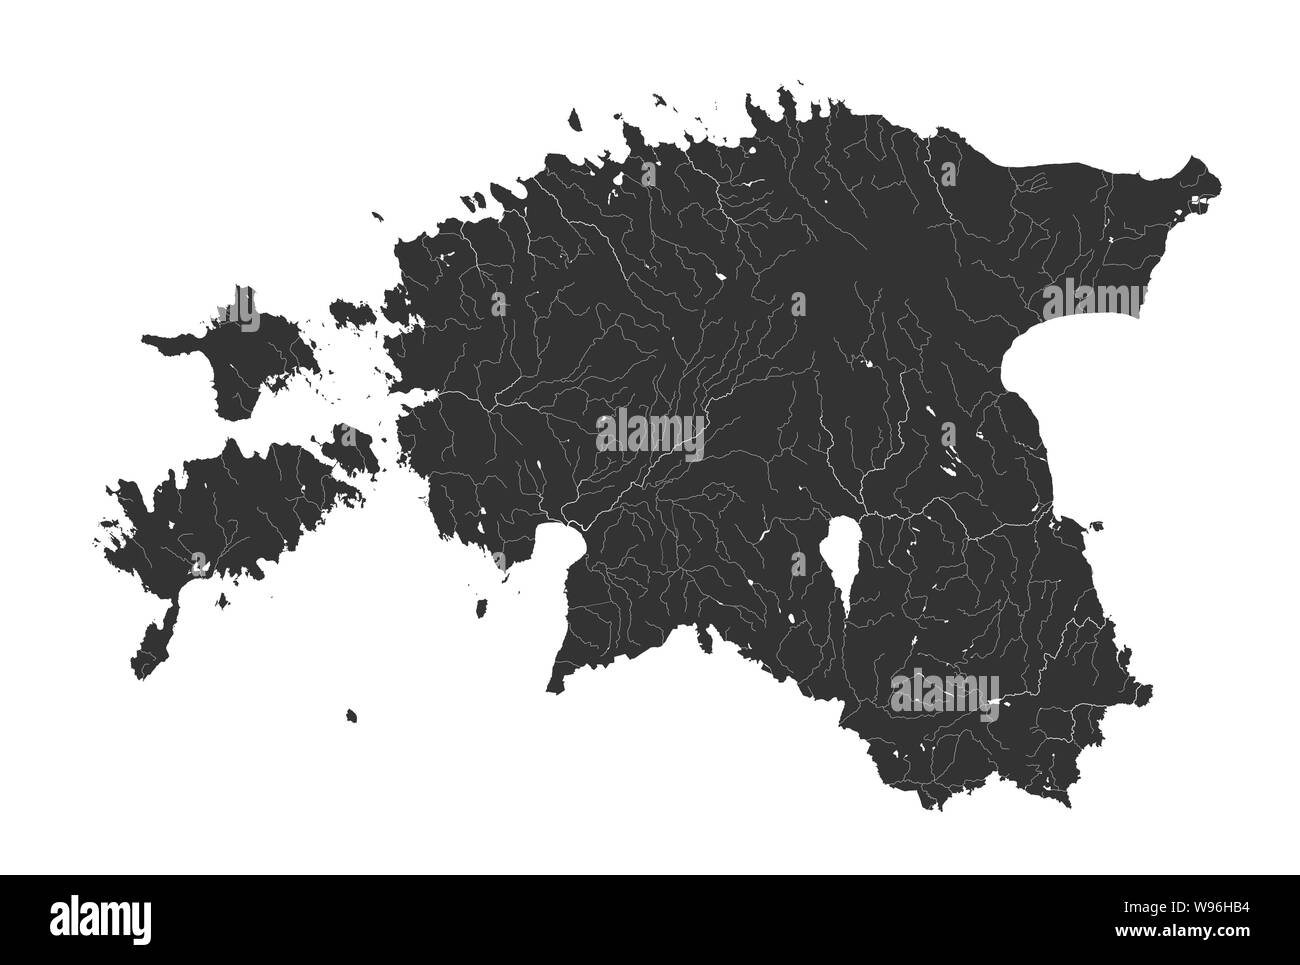 Baltic states - map of Estonia. Hand made. Rivers and lakes are shown. Please look at my other images of cartographic series - they are all very detai Stock Vector